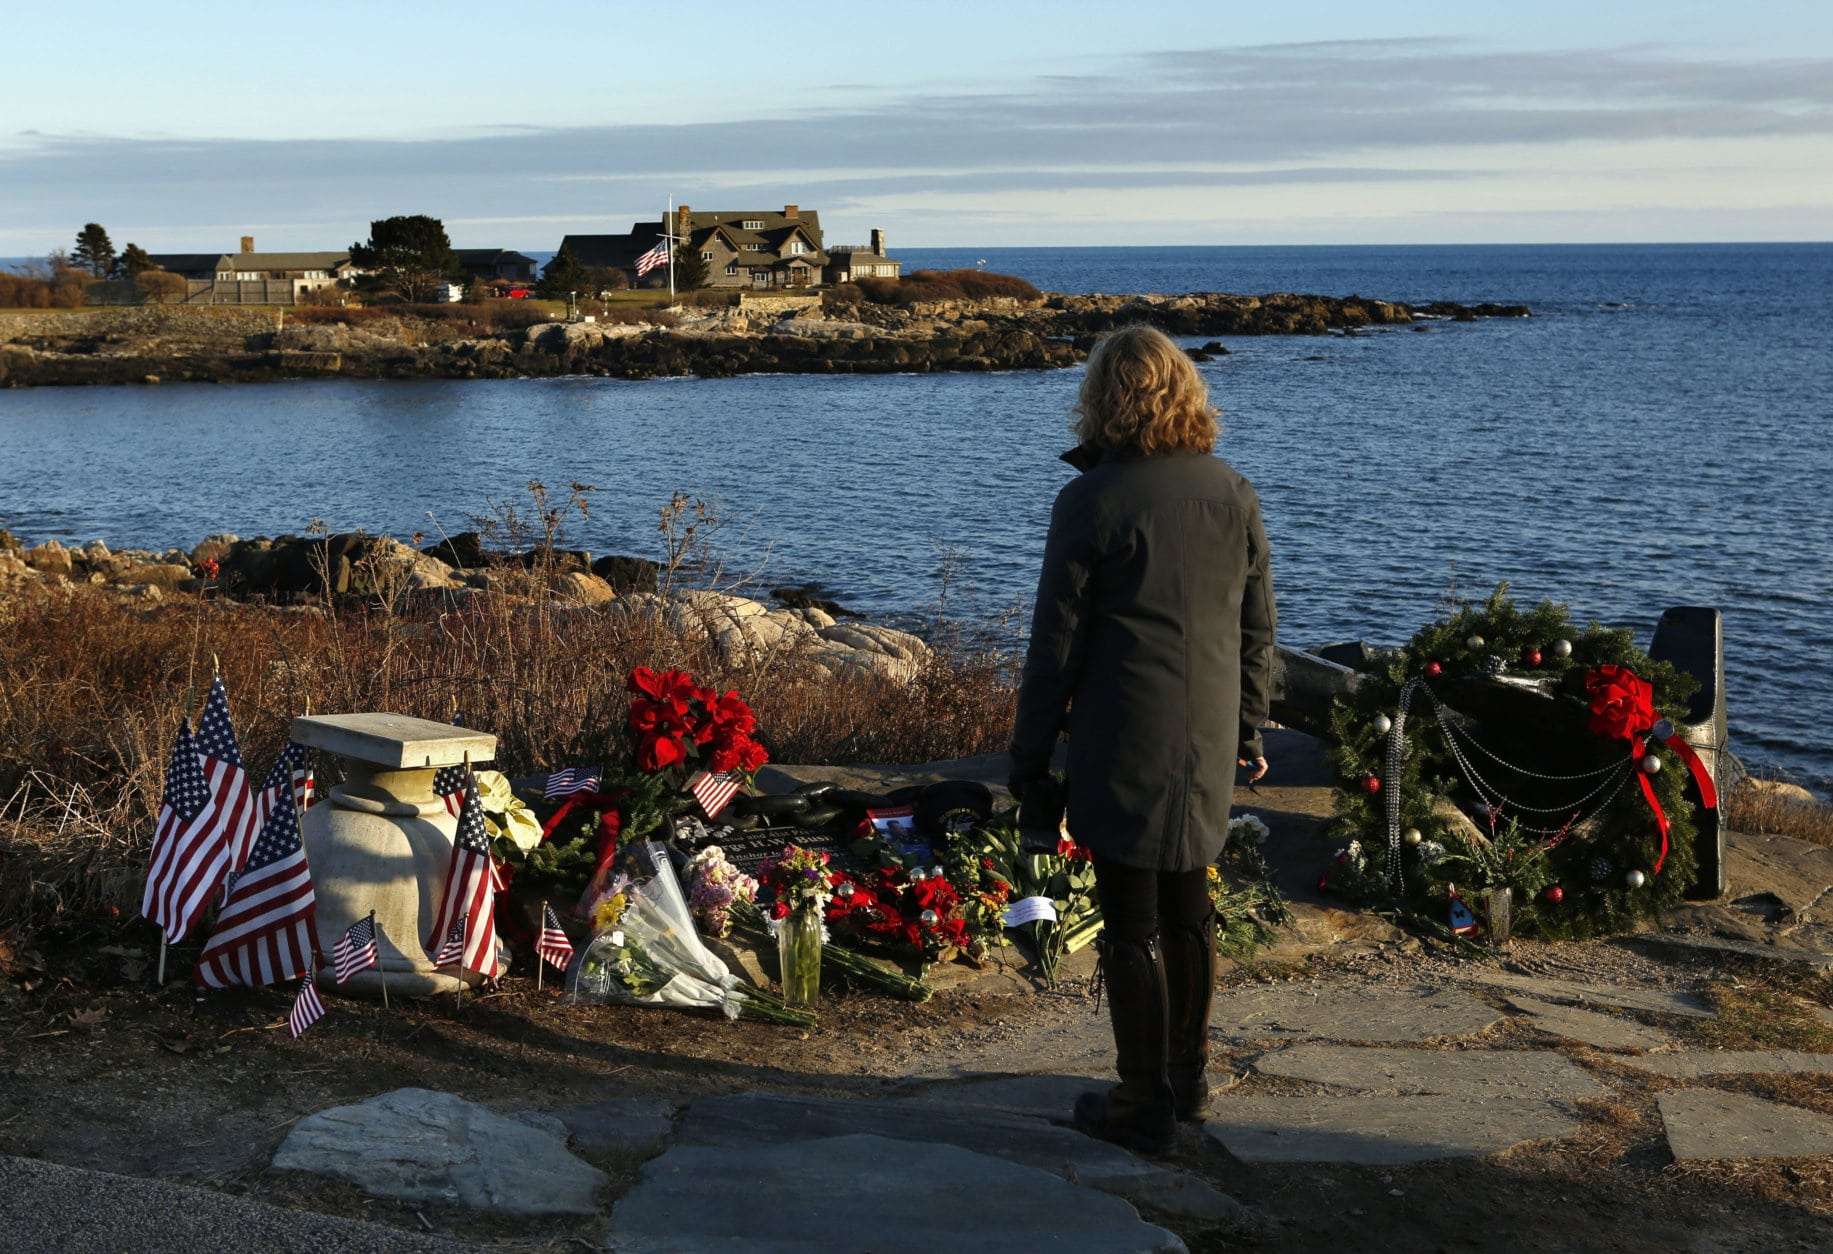 Cathy Rogers of Windham, Maine, pays her respects at a makeshift memorial for President George H. W. Bush across from Walker's Point, the Bush's summer home, Saturday, Dec. 1, 2018, in Kennebunkport, Maine. Bush died at the age of 94 on Friday, about eight months after the death of his wife, Barbara Bush. (AP Photo/Robert F. Bukaty)